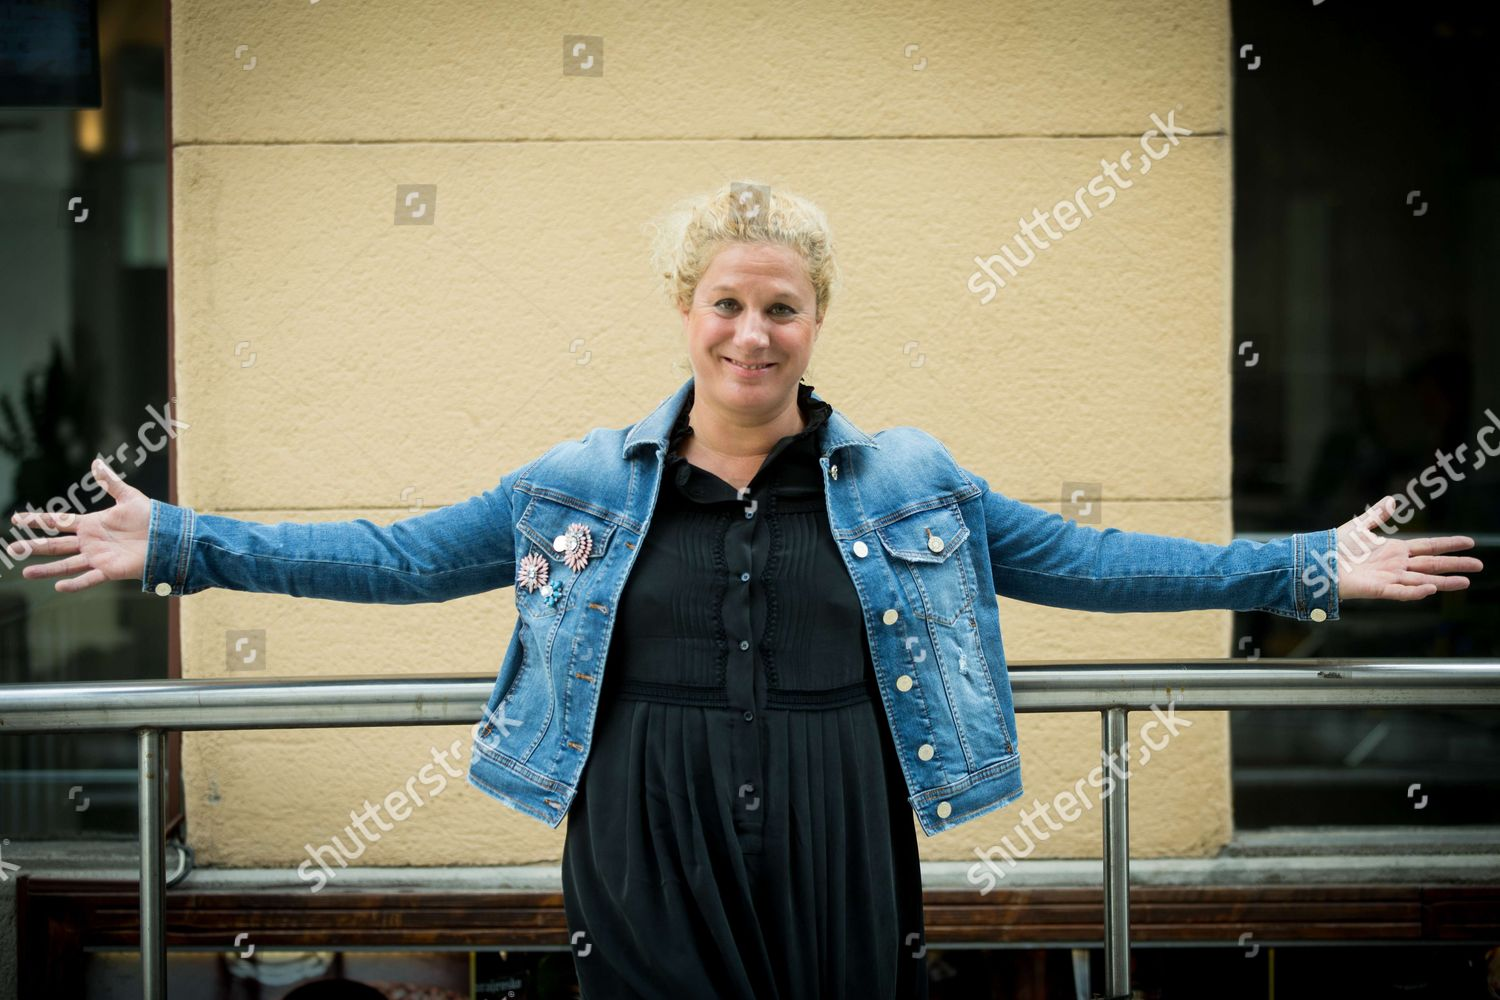 Ana Ros Videos chef ana ros editorial stock photo - stock image   shutterstock